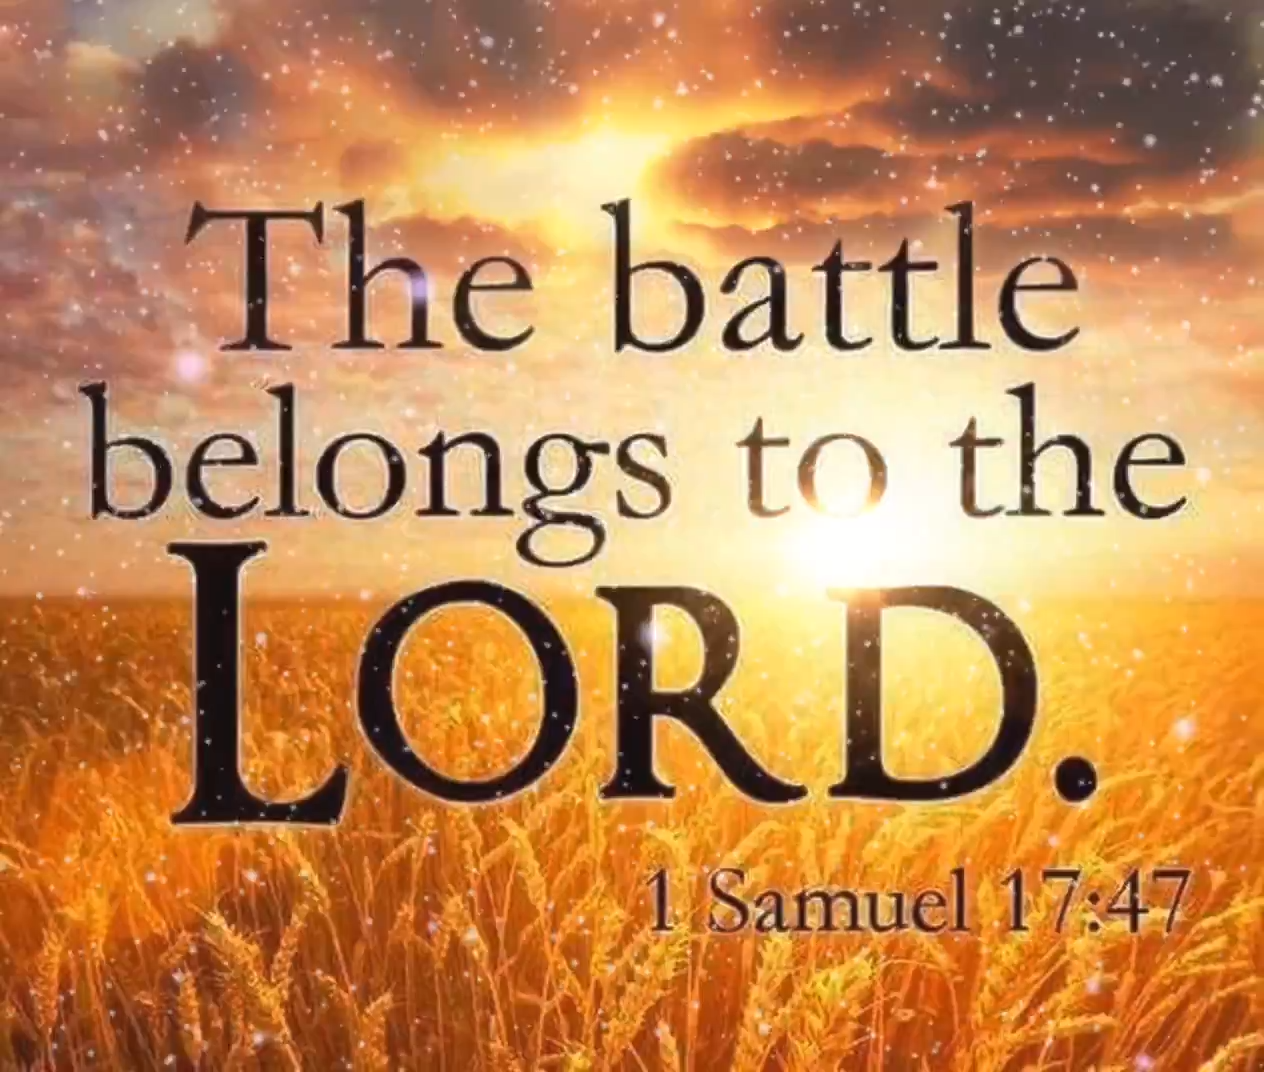 The battle belongs to the Lord. [Video] | Christian quotes inspirational, Christian inspirational words, Christian  quotes prayer